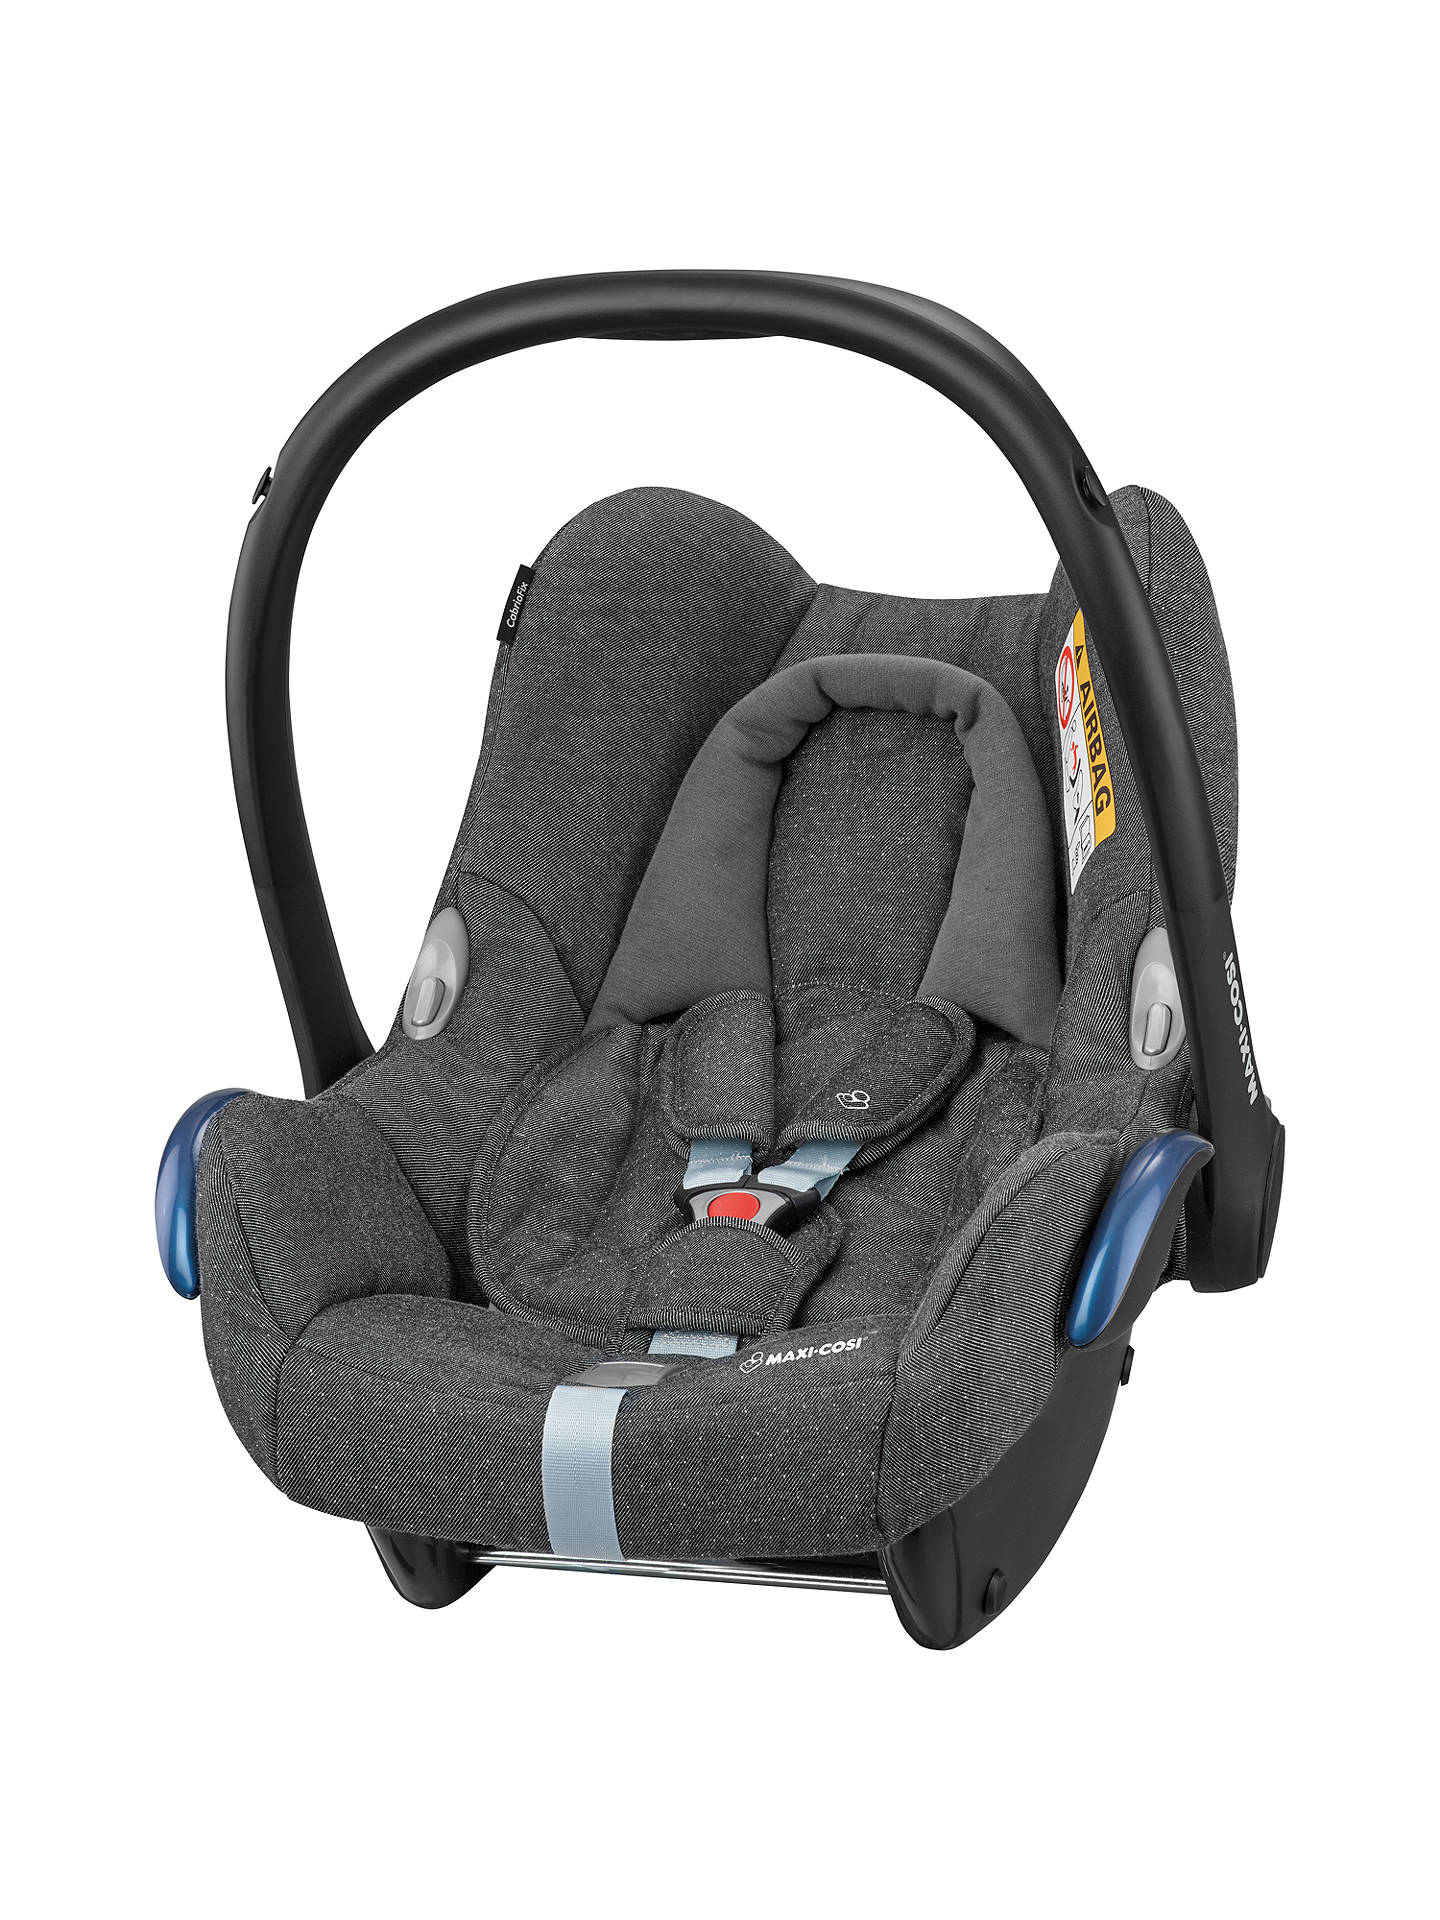 maxi cosi cabriofix group 0 baby car seat sparkling grey at john lewis partners. Black Bedroom Furniture Sets. Home Design Ideas